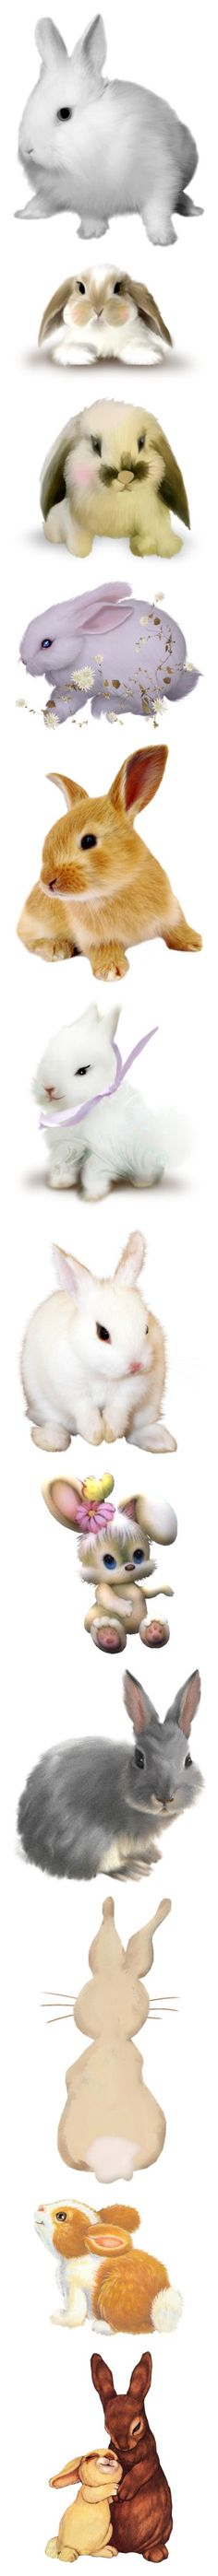 """""""bunnies"""" by pokeasaurousrex ❤ liked on Polyvore featuring animals, rabbit, pet, bunnies, white, easter, backgrounds, filler, brown and spring"""